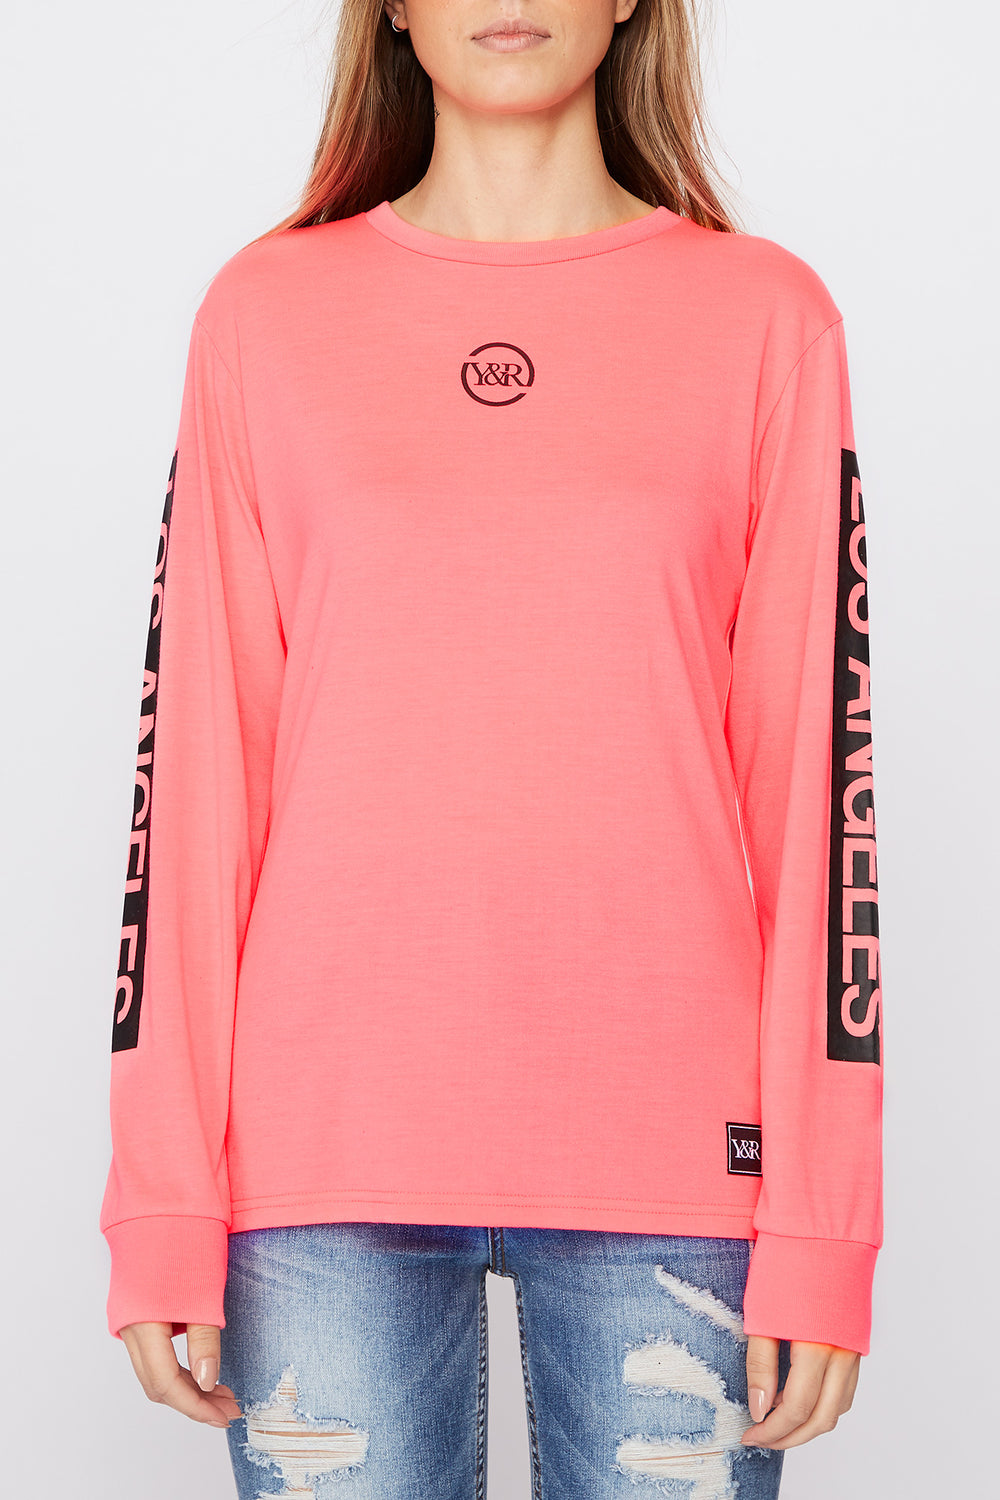 Young & Reckless Womens Neon Logo Long Sleeve Shirt Magenta